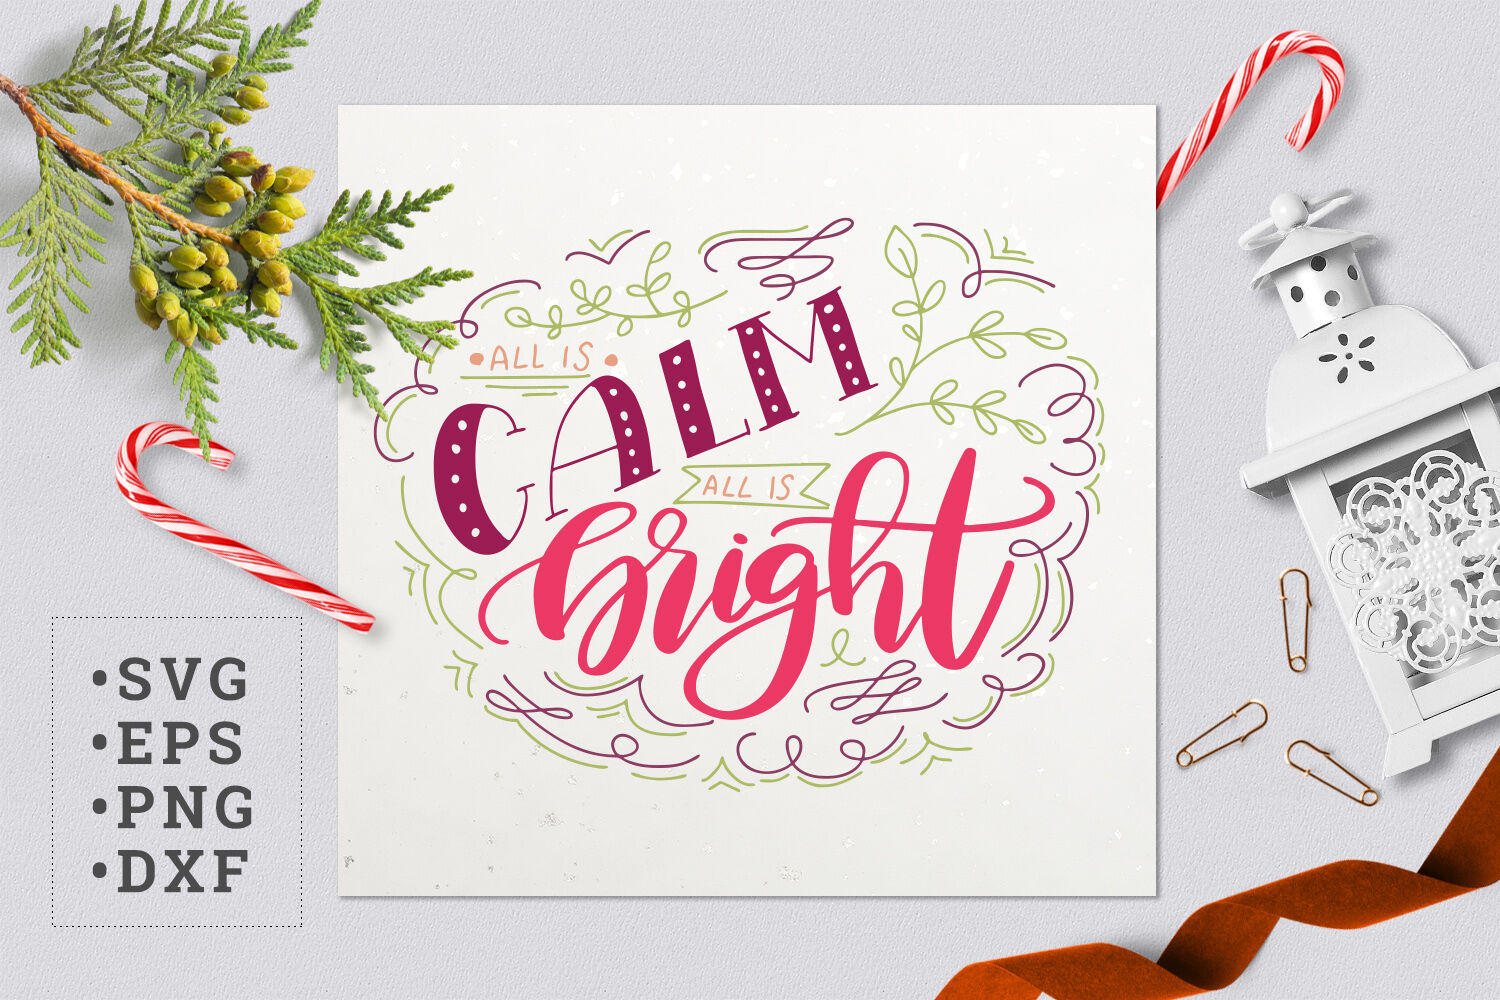 All Is Calm All Is Bright Svg By Zzorna Art Thehungryjpeg Com